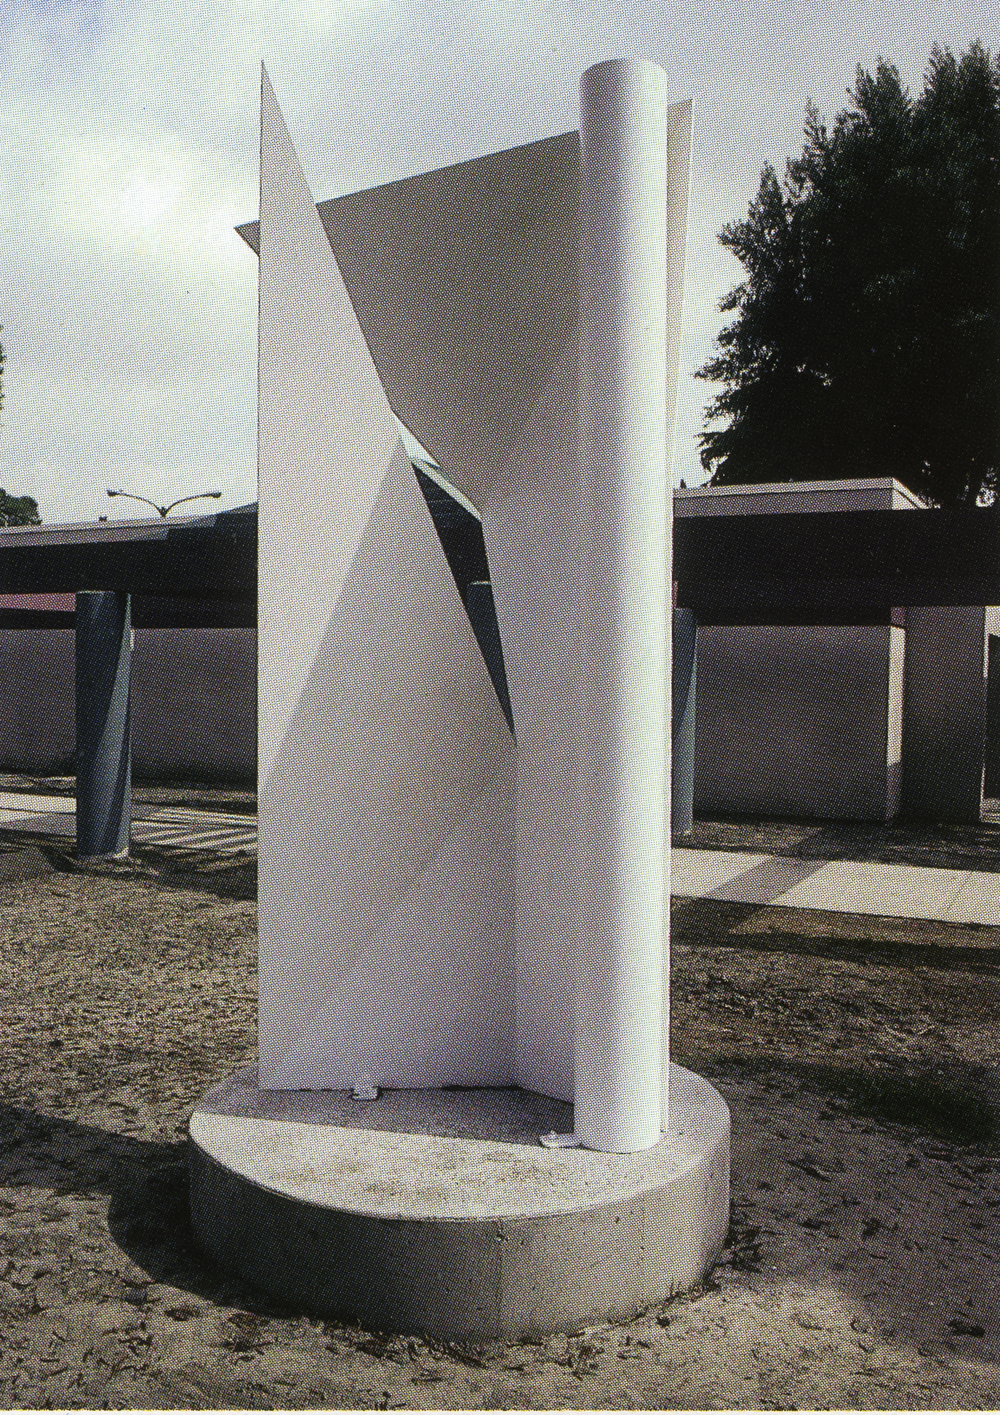 Downey Museum, Downey, California; 1993.  Atlas II.  10' x 5' x 5'